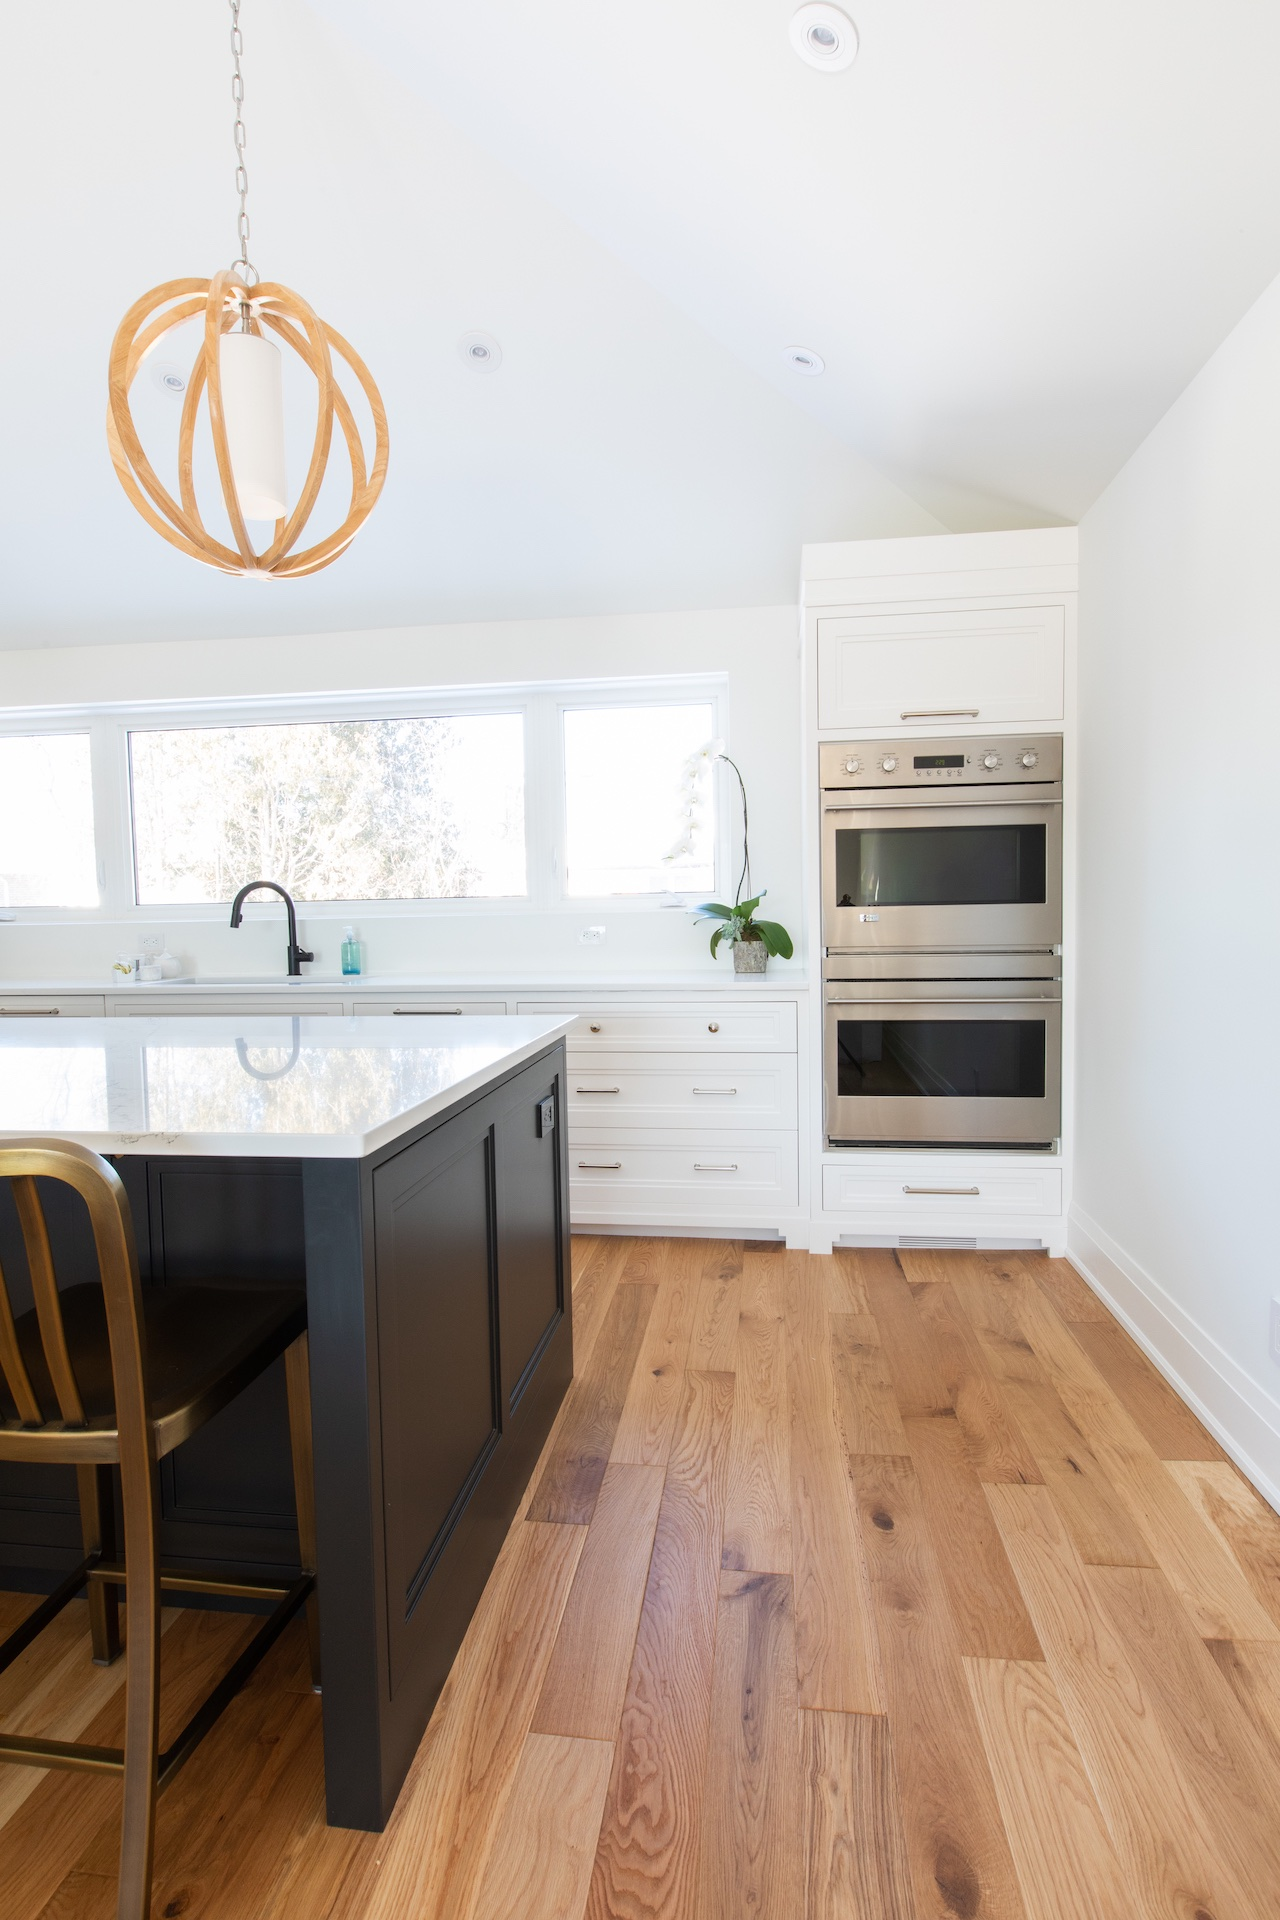 oven in kitchen cabinets